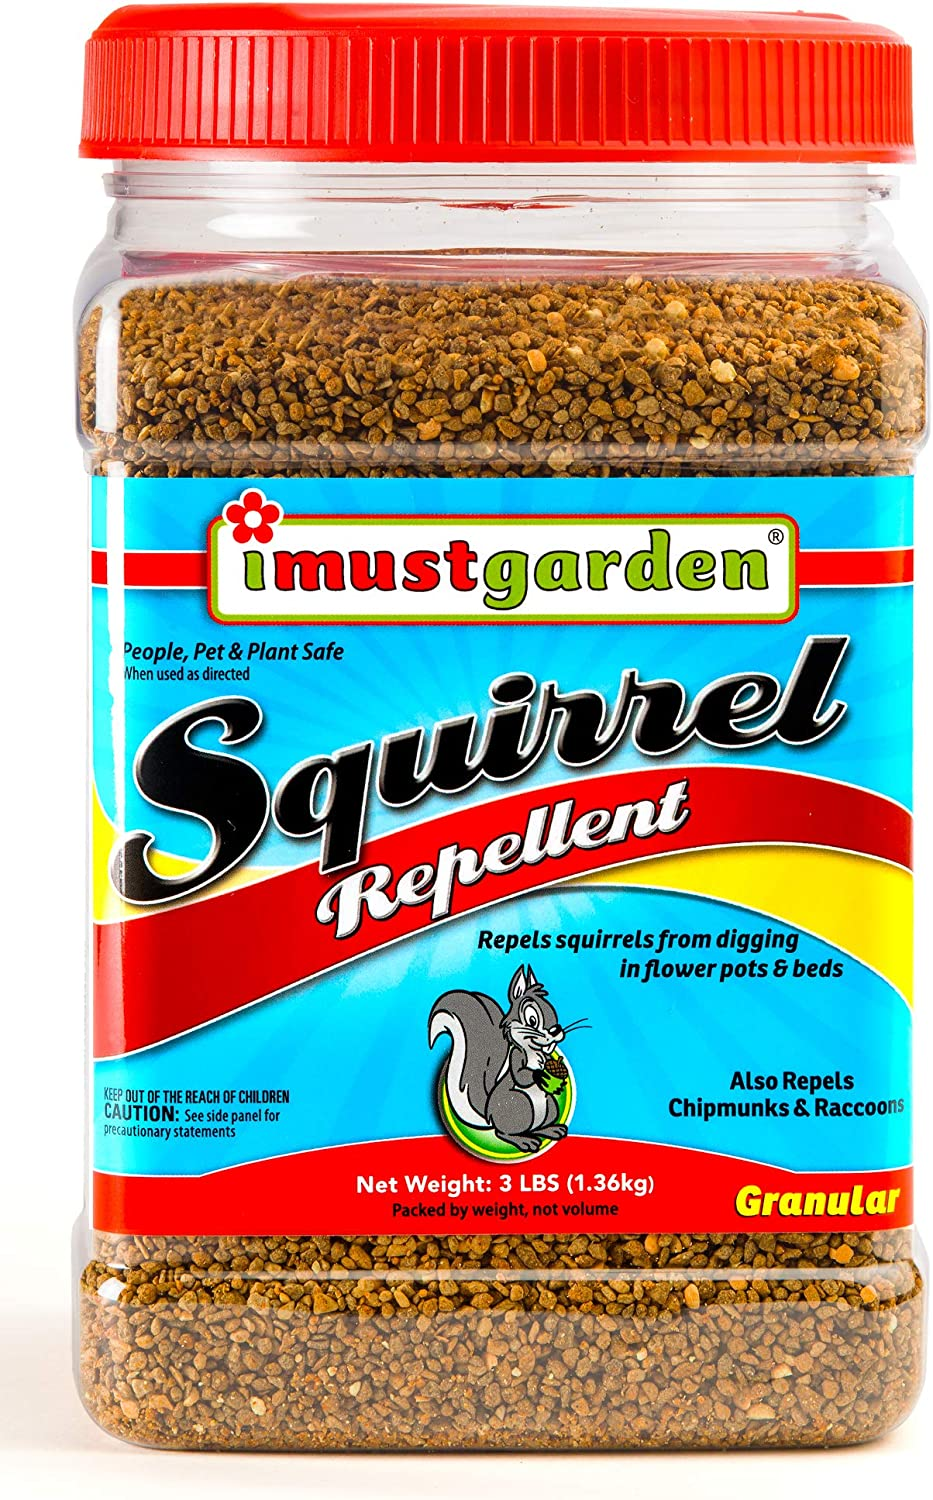 I Must Garden Squirrel Repellent - 3lb Granular - Stops Digging in Flower Pots & Beds